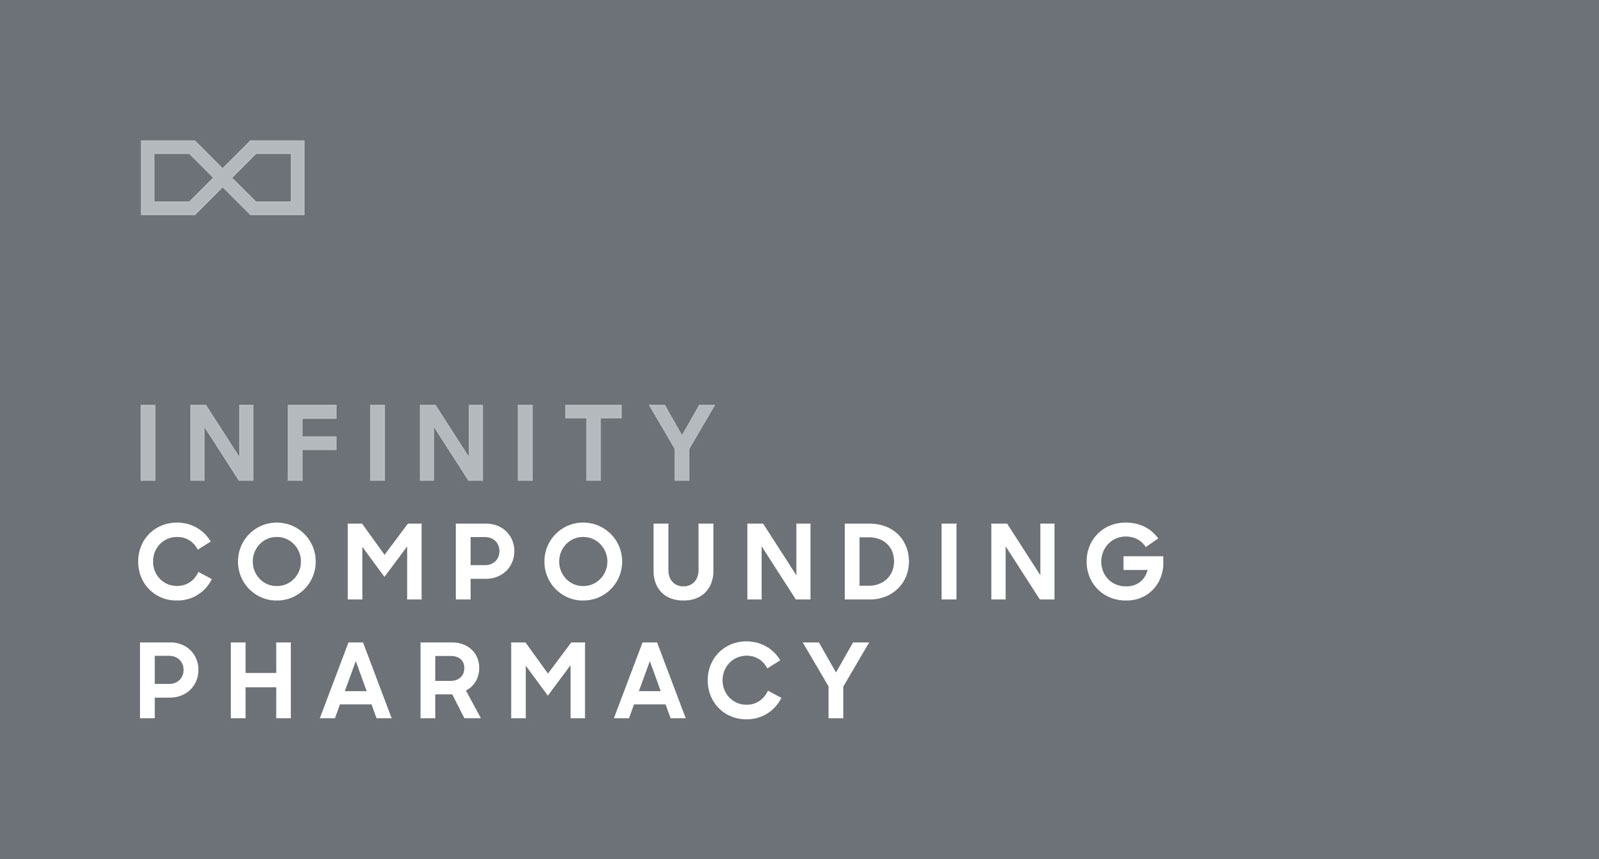 INFINITY_COMPOUNDING_PHARMACY__LOGO.jpg